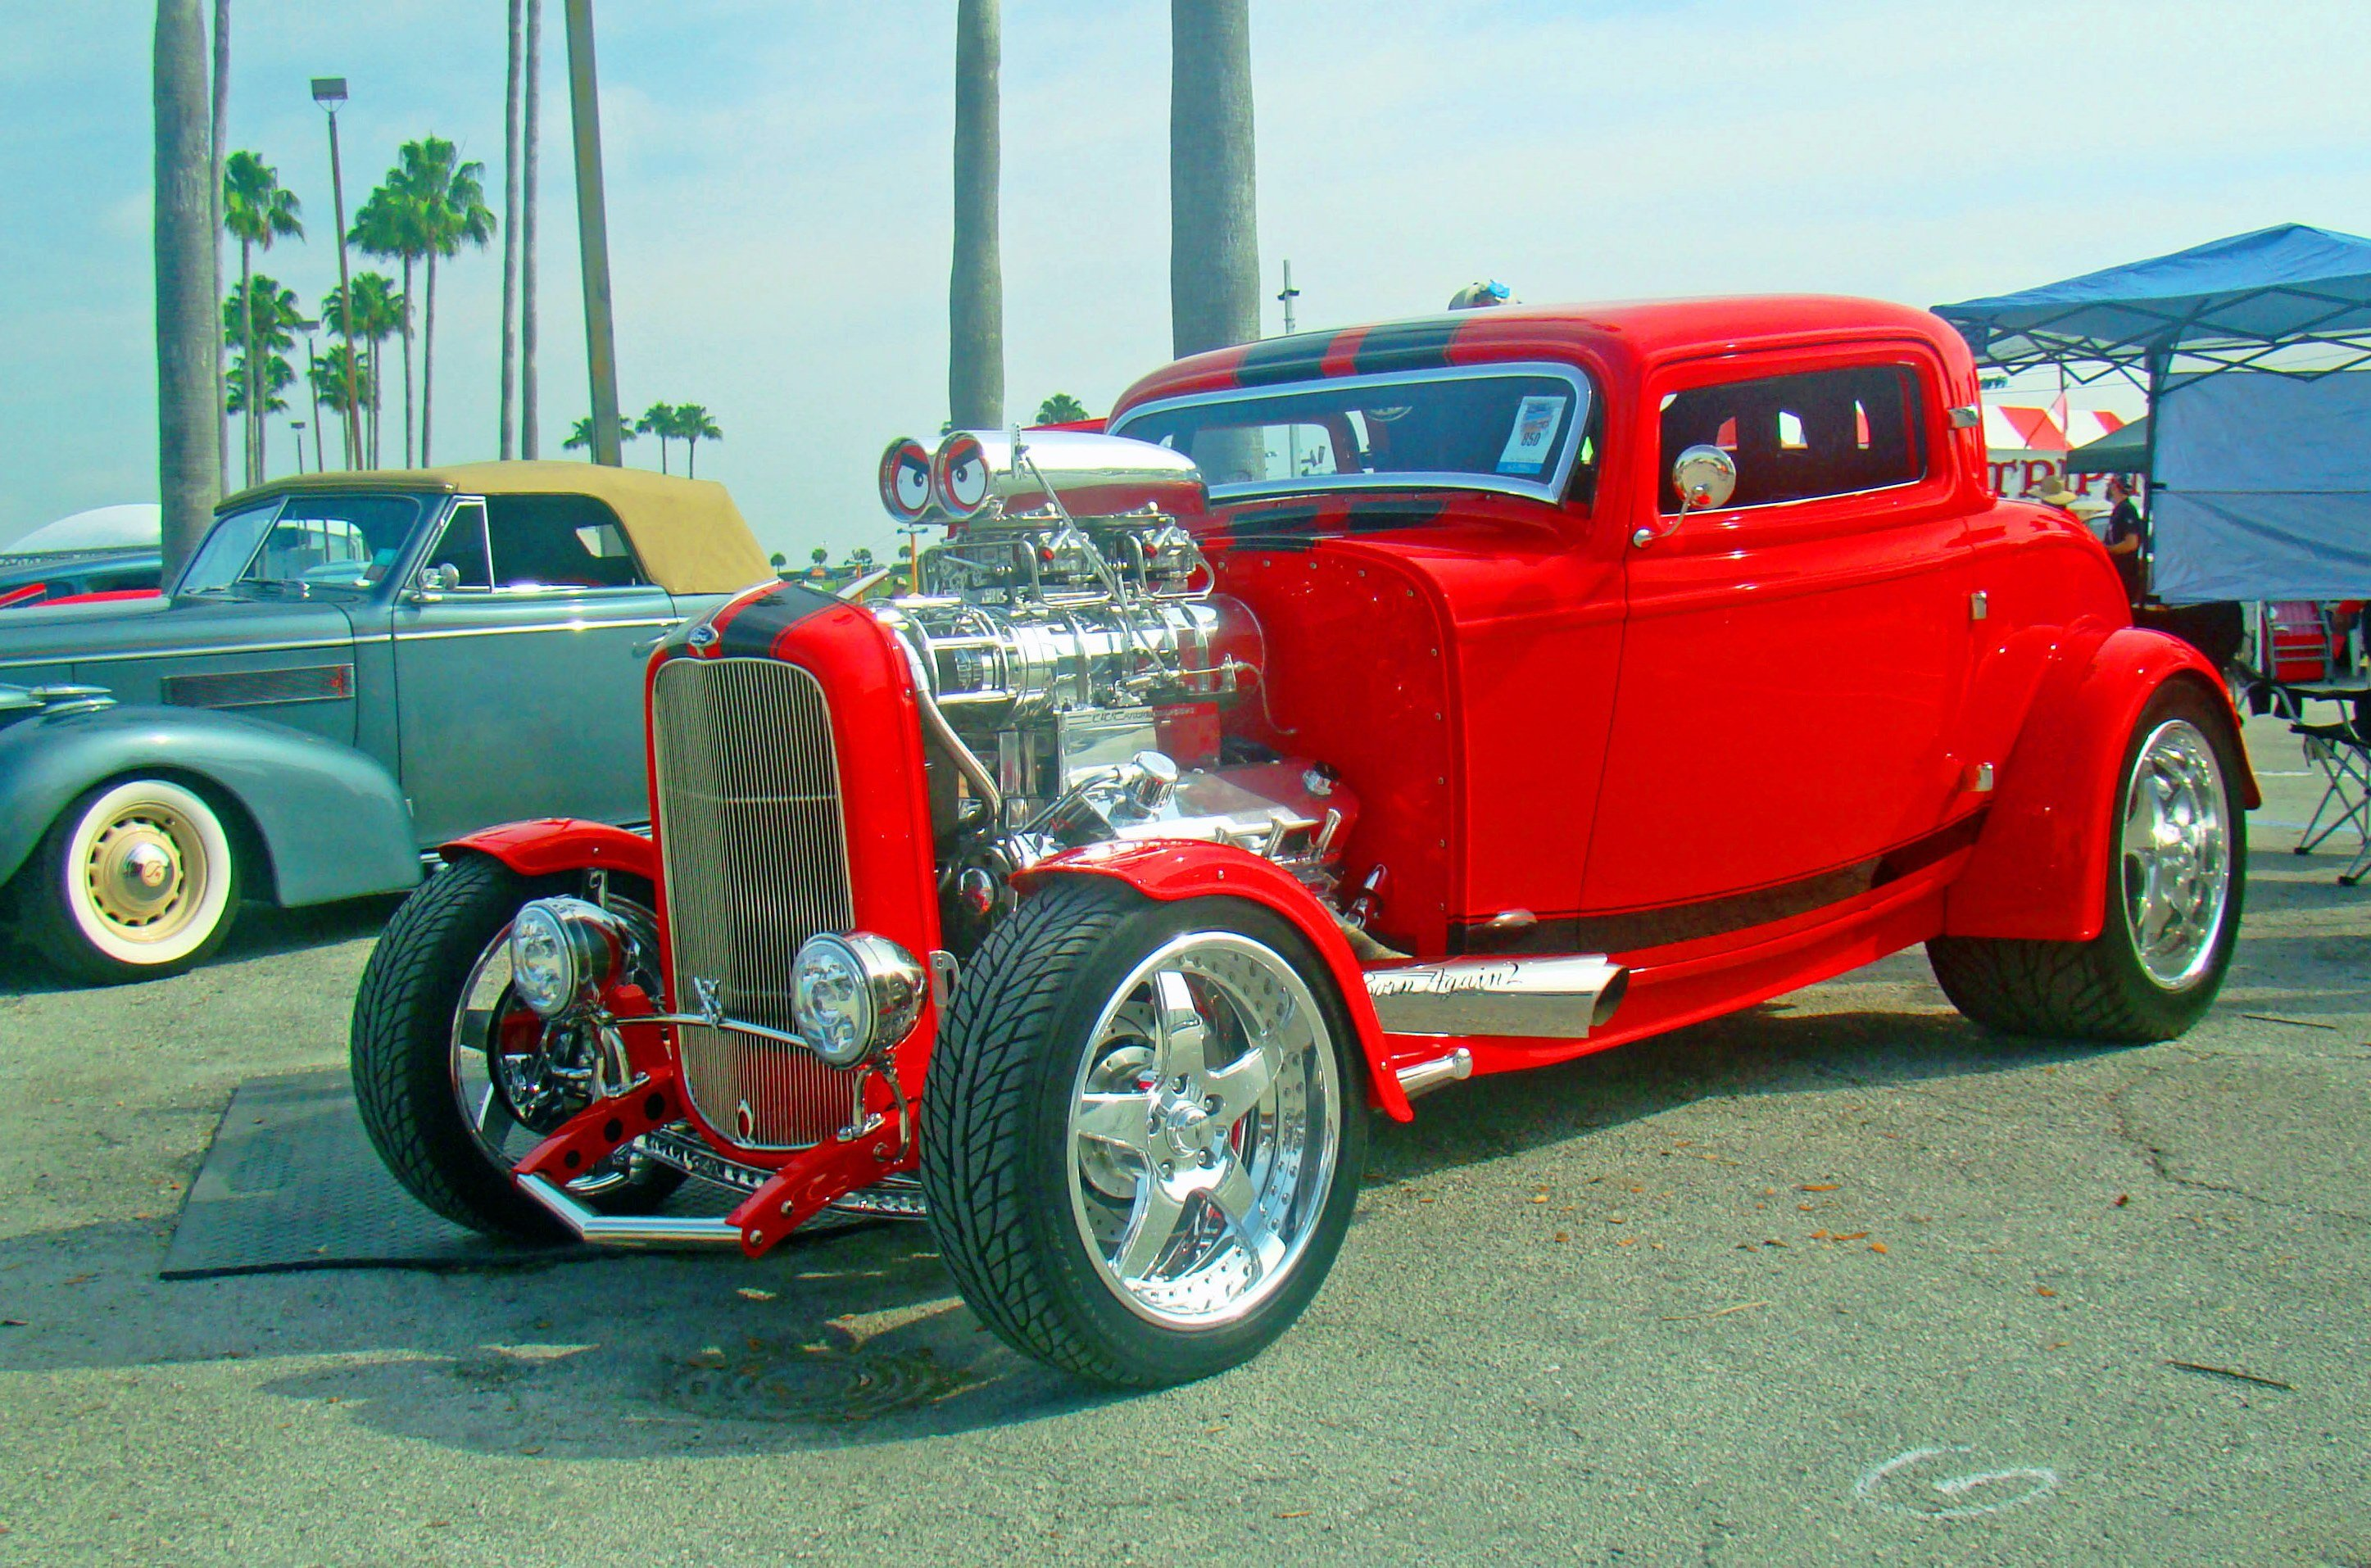 32nd Southeast Street Rod Nationals Crushes Expectations